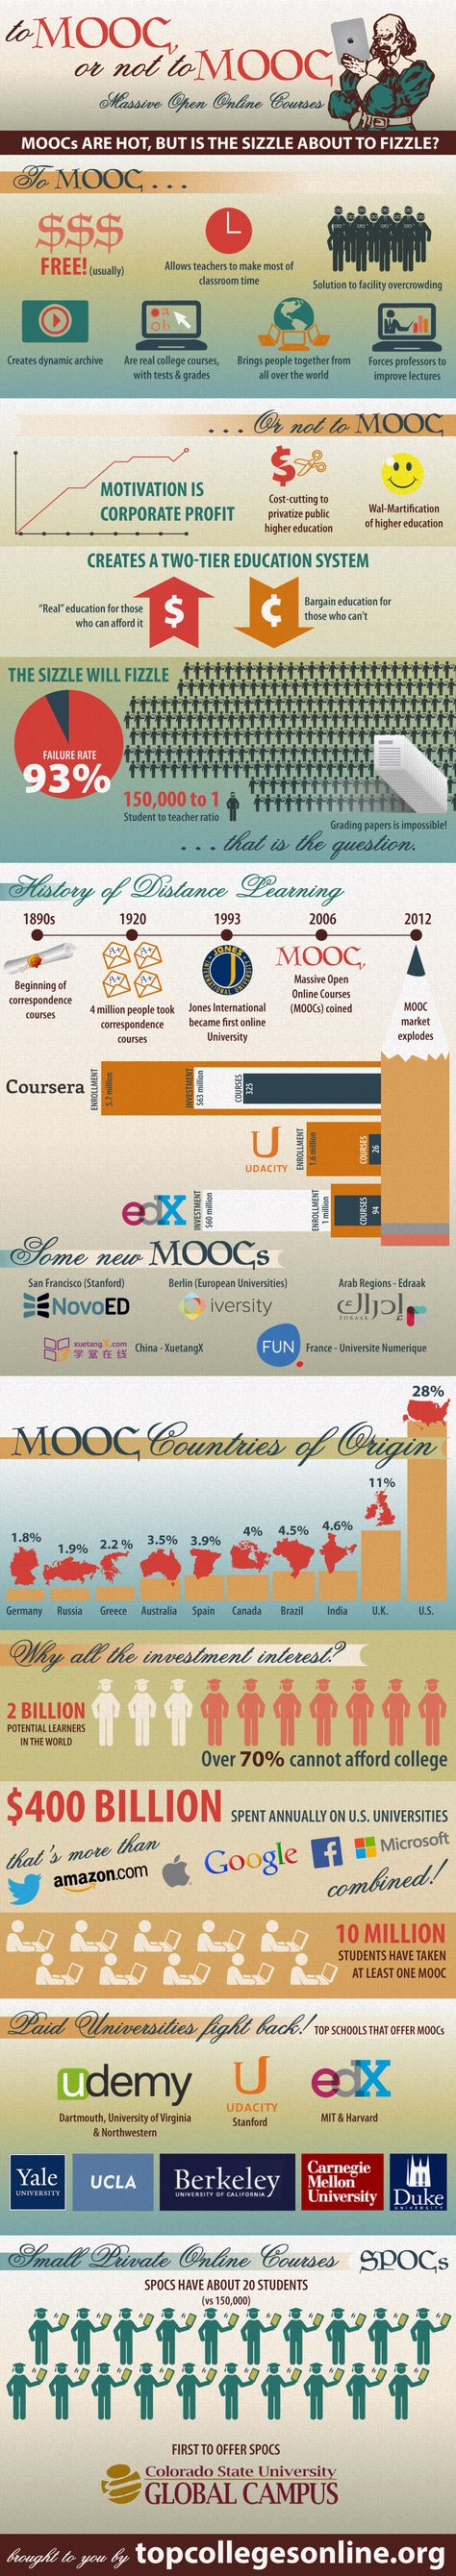 Infographic: To MOOC or Not To MOOC